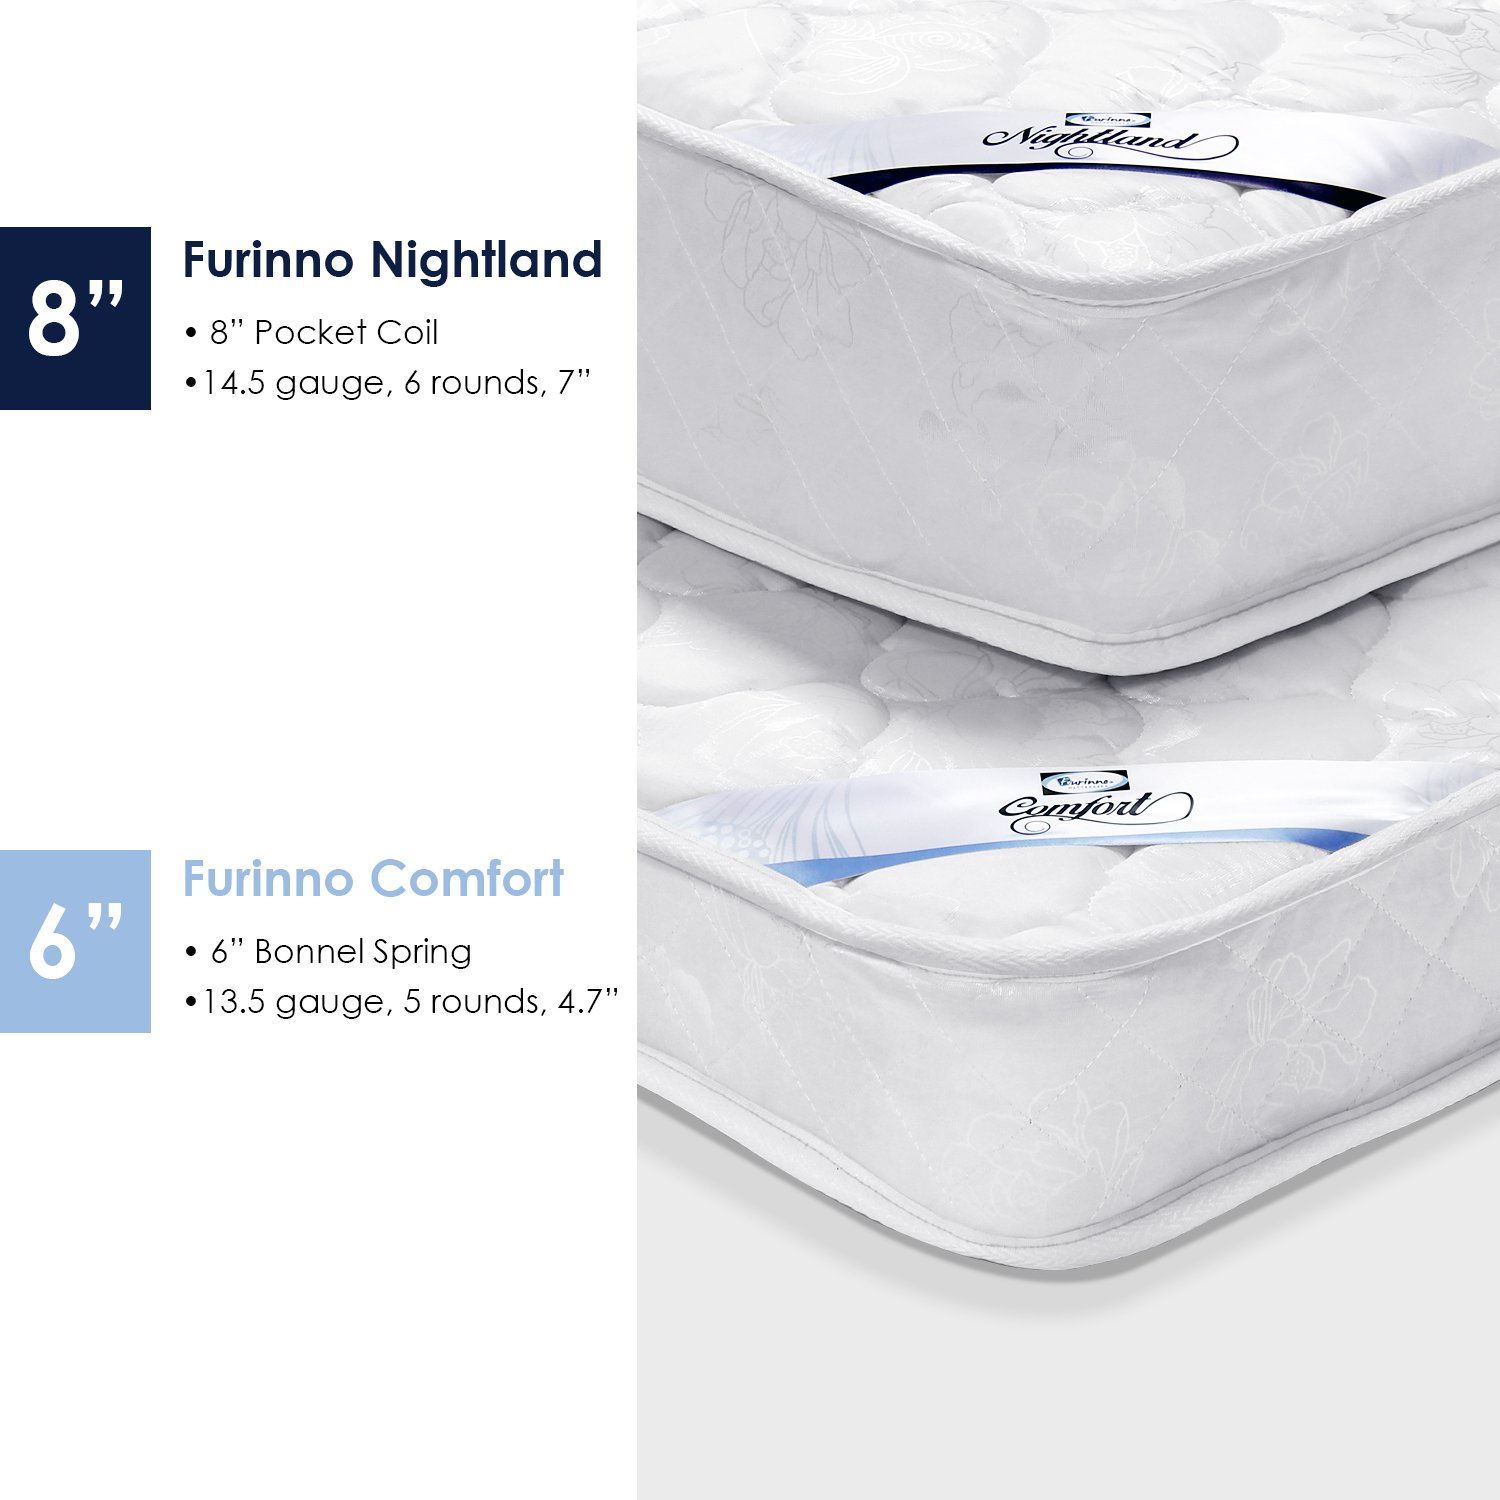 Amazon.com: Furinno Nightland 8-Inch Pocket Coil Mattress, Full: Kitchen & Dining